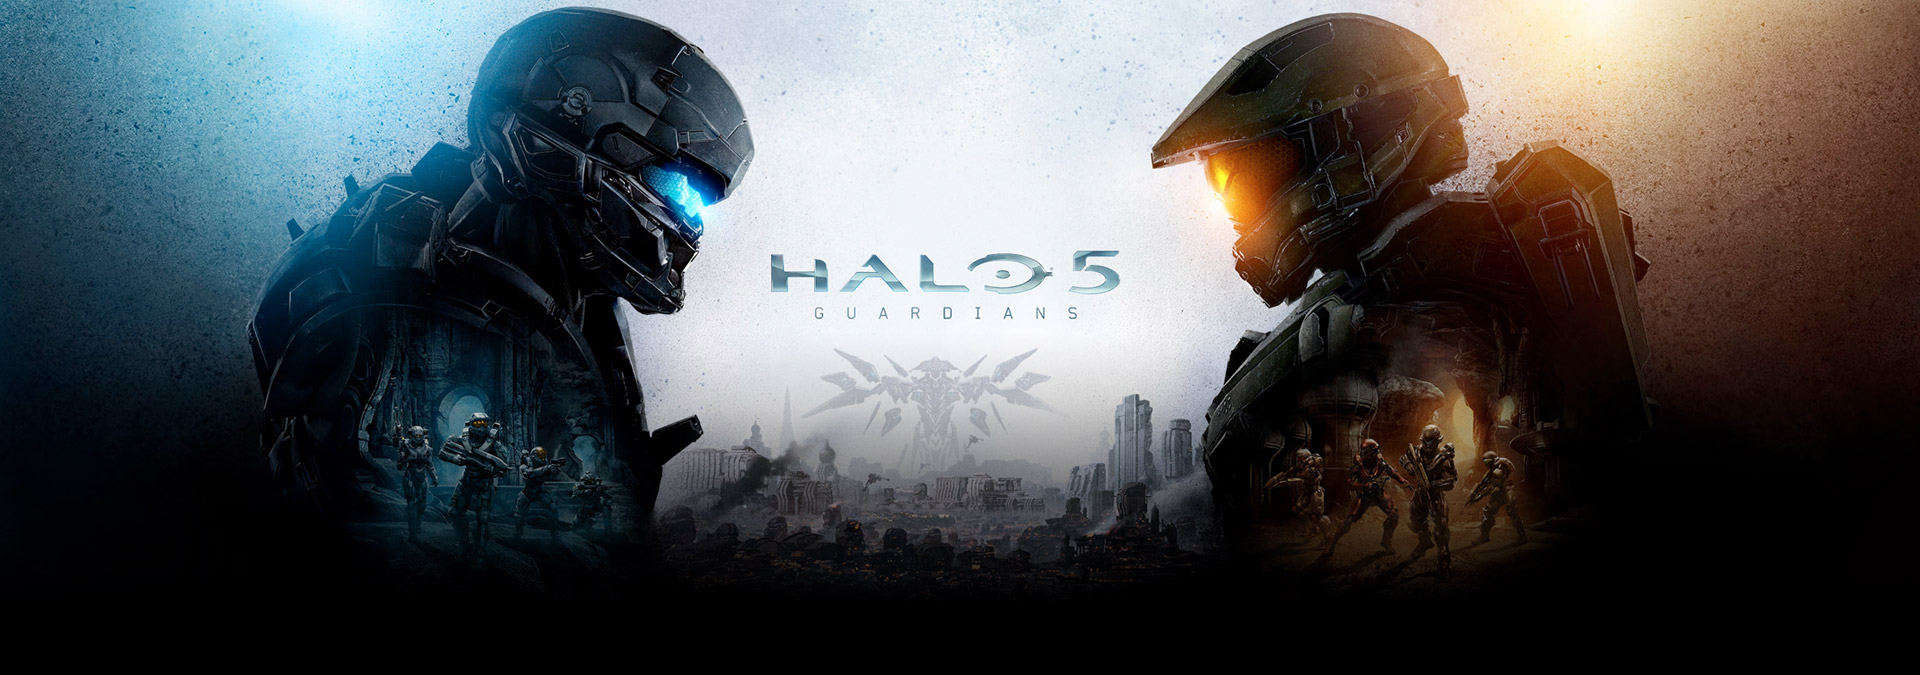 Halo 5 guardians release date